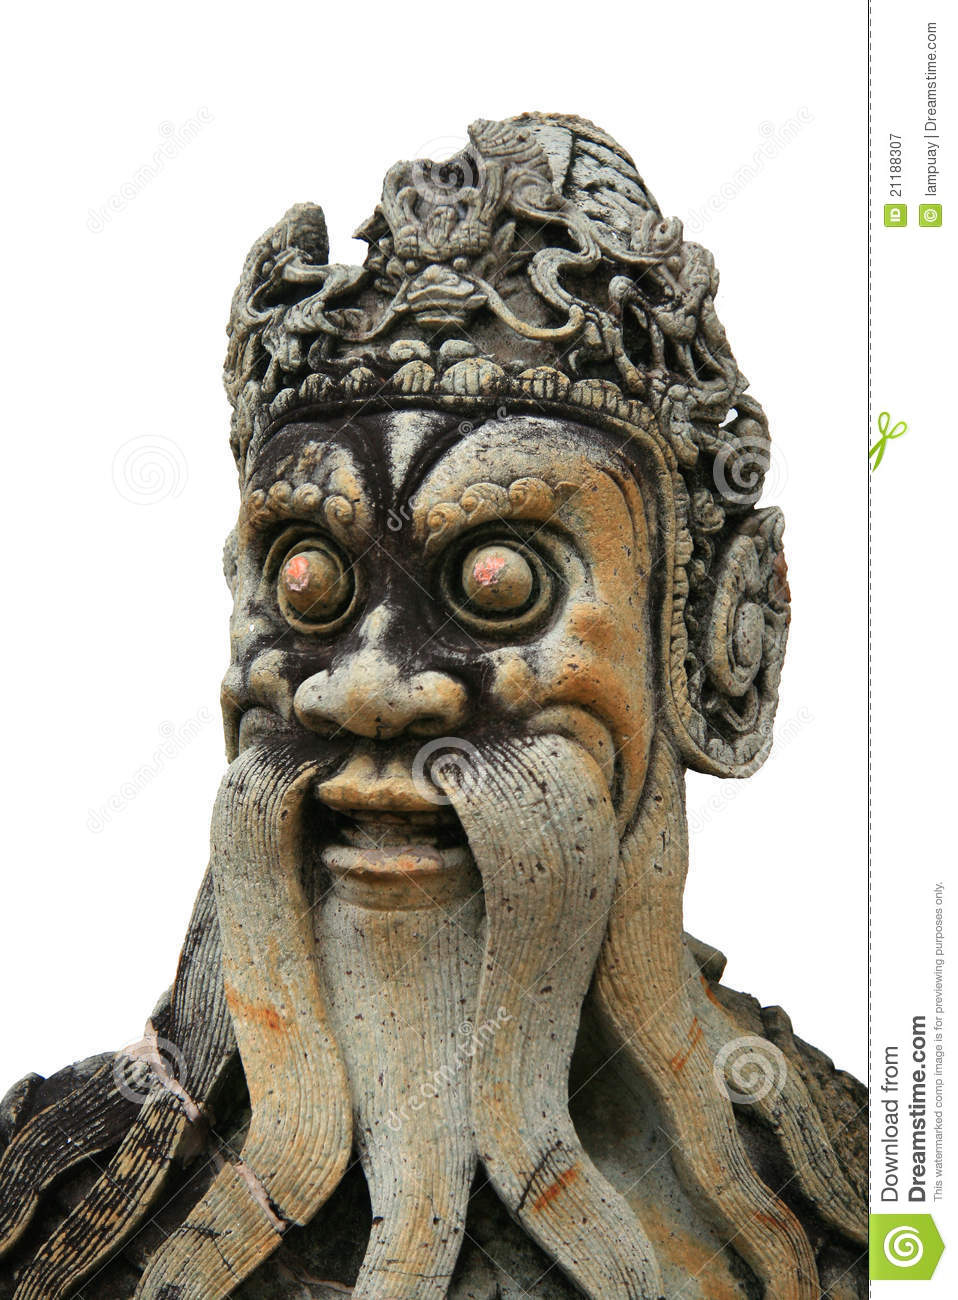 Chinese old man statue